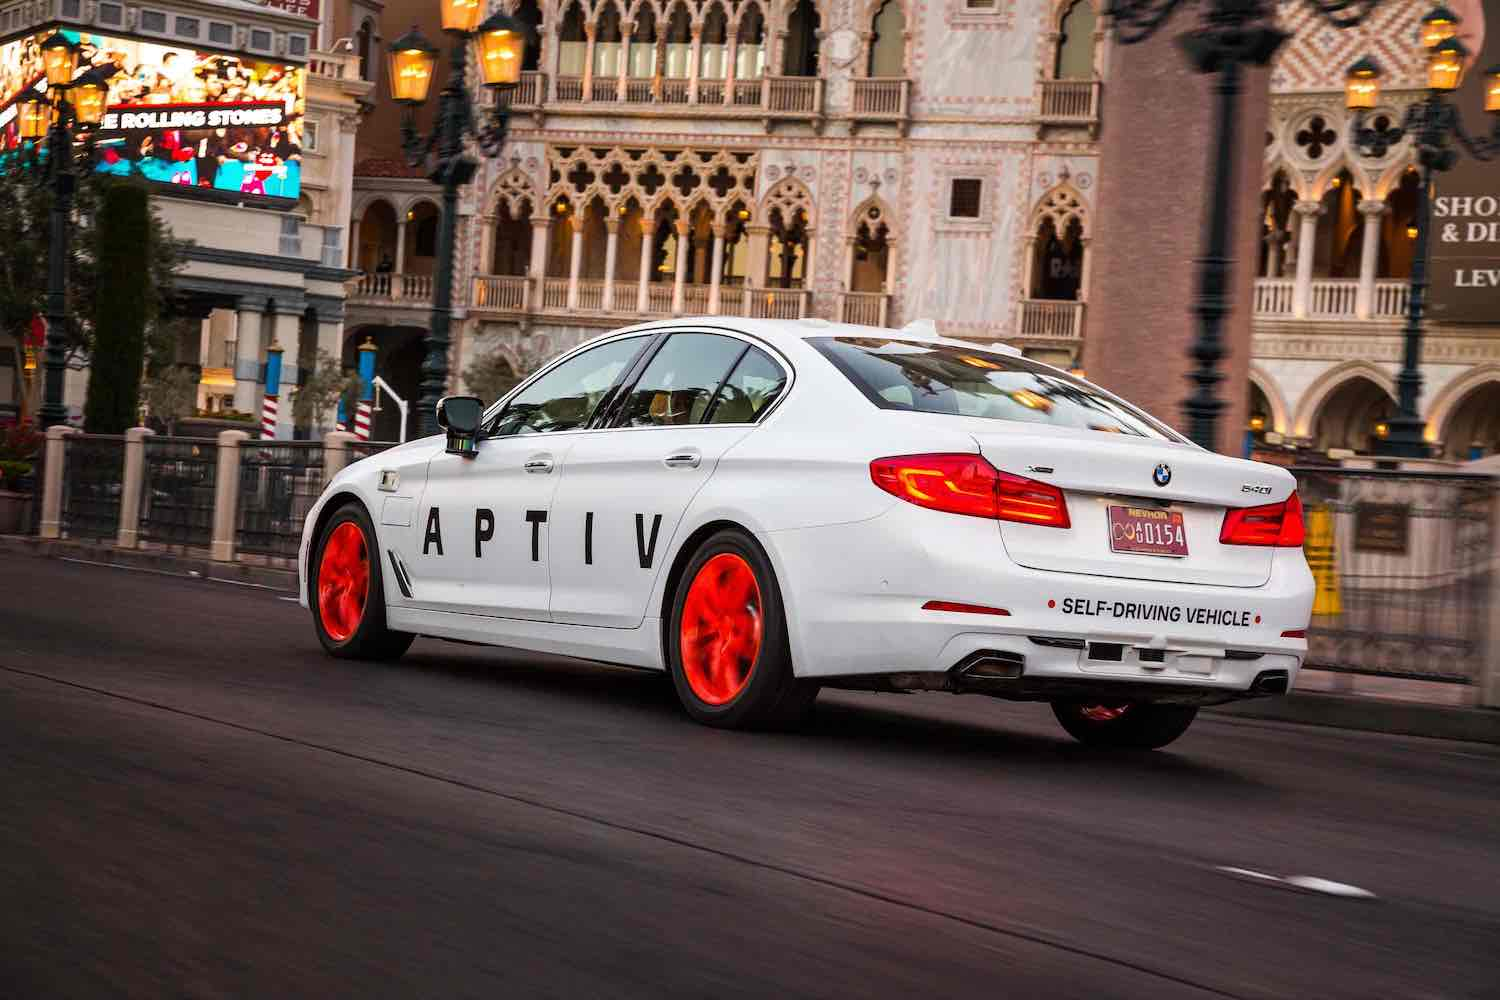 APTIV Vehicle Autonomous Technology - Las Vegas